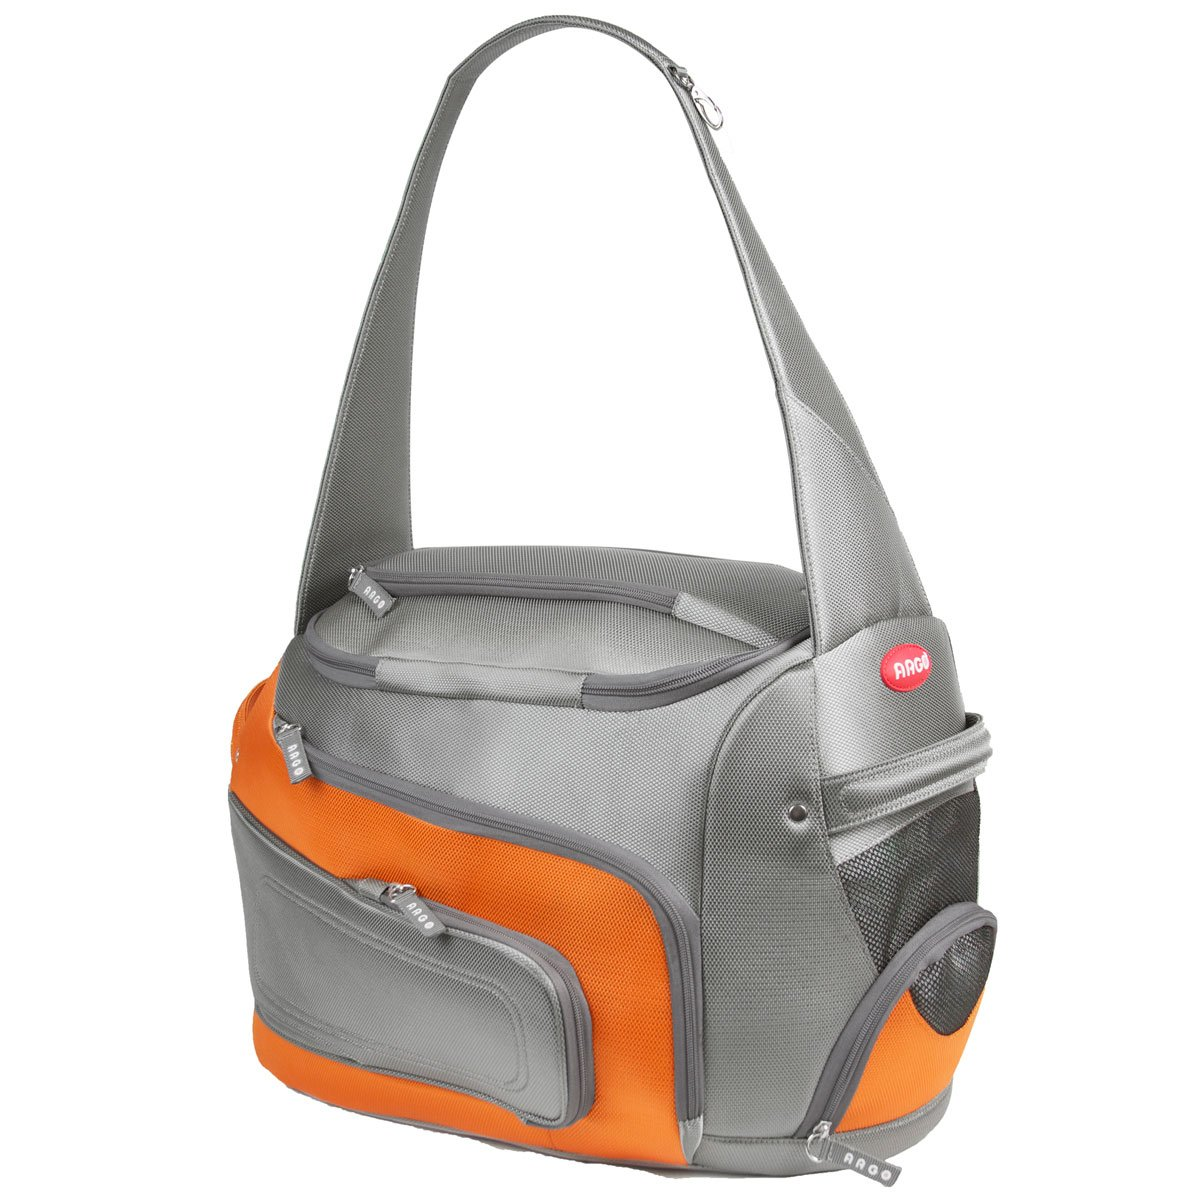 ARGO by Teafco Duff-O Airline Approved (20-Inch Large) Pet Carrier-Tango Orange AC2D1655L